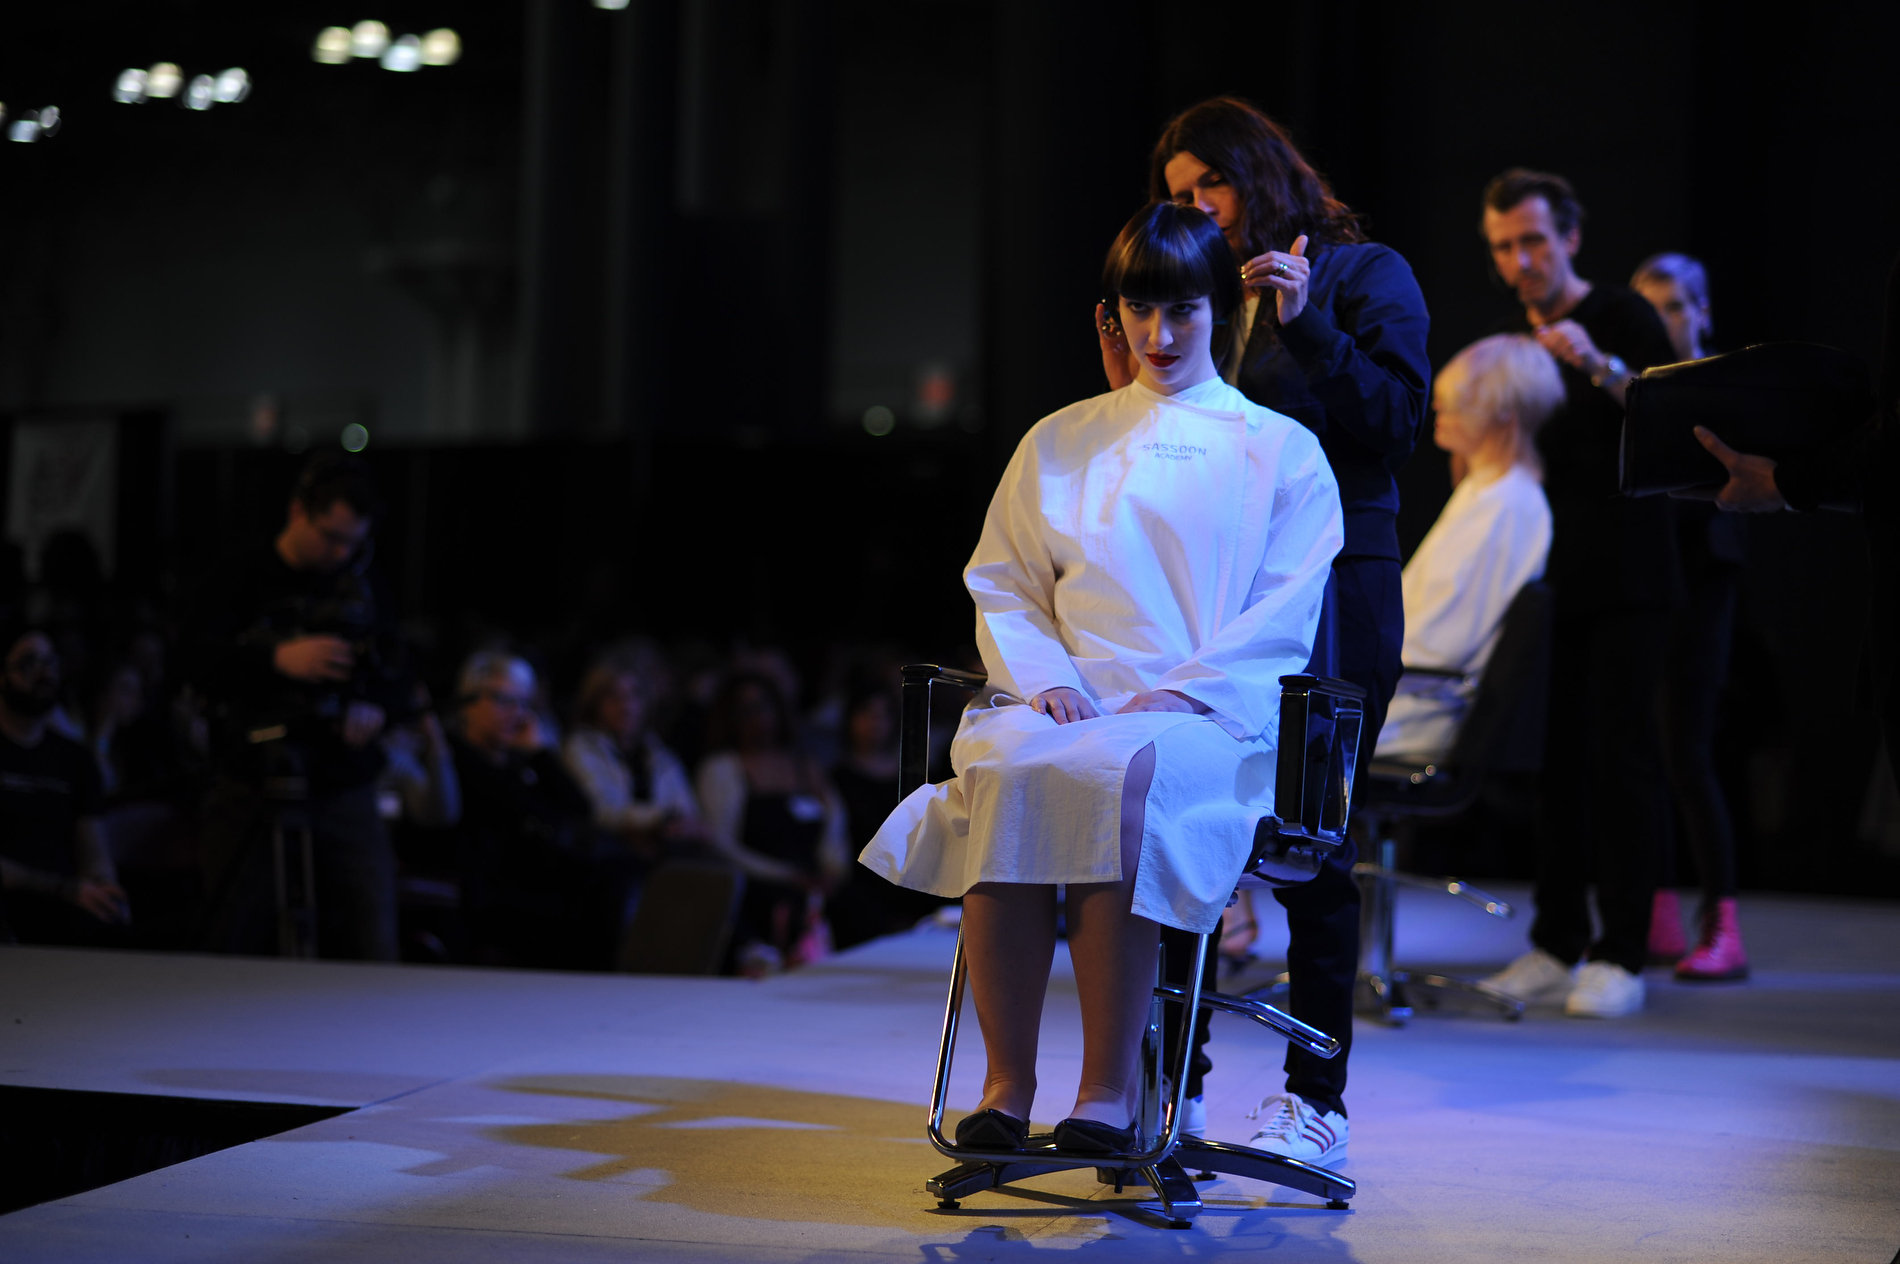 Sassoon Academys Creative Directors Tracey Sakosits and Mark Hayes on the IBS Main Stage